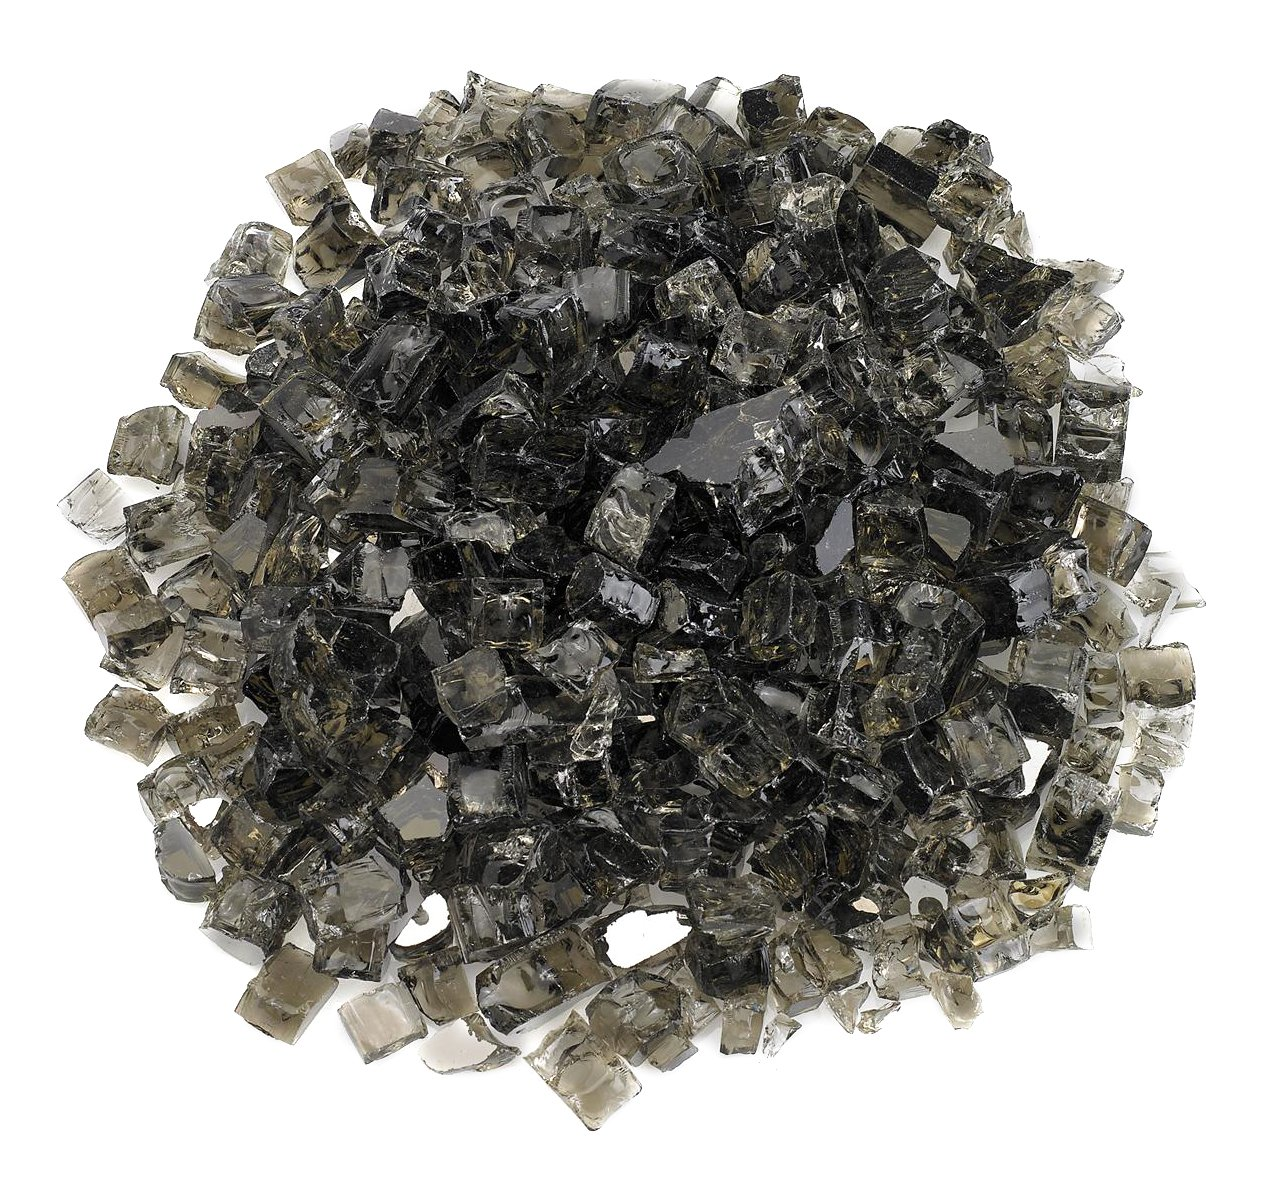 "American Fireglass 1/2"" Bronze Reflective Fire Glass, 20 lb. Bag"